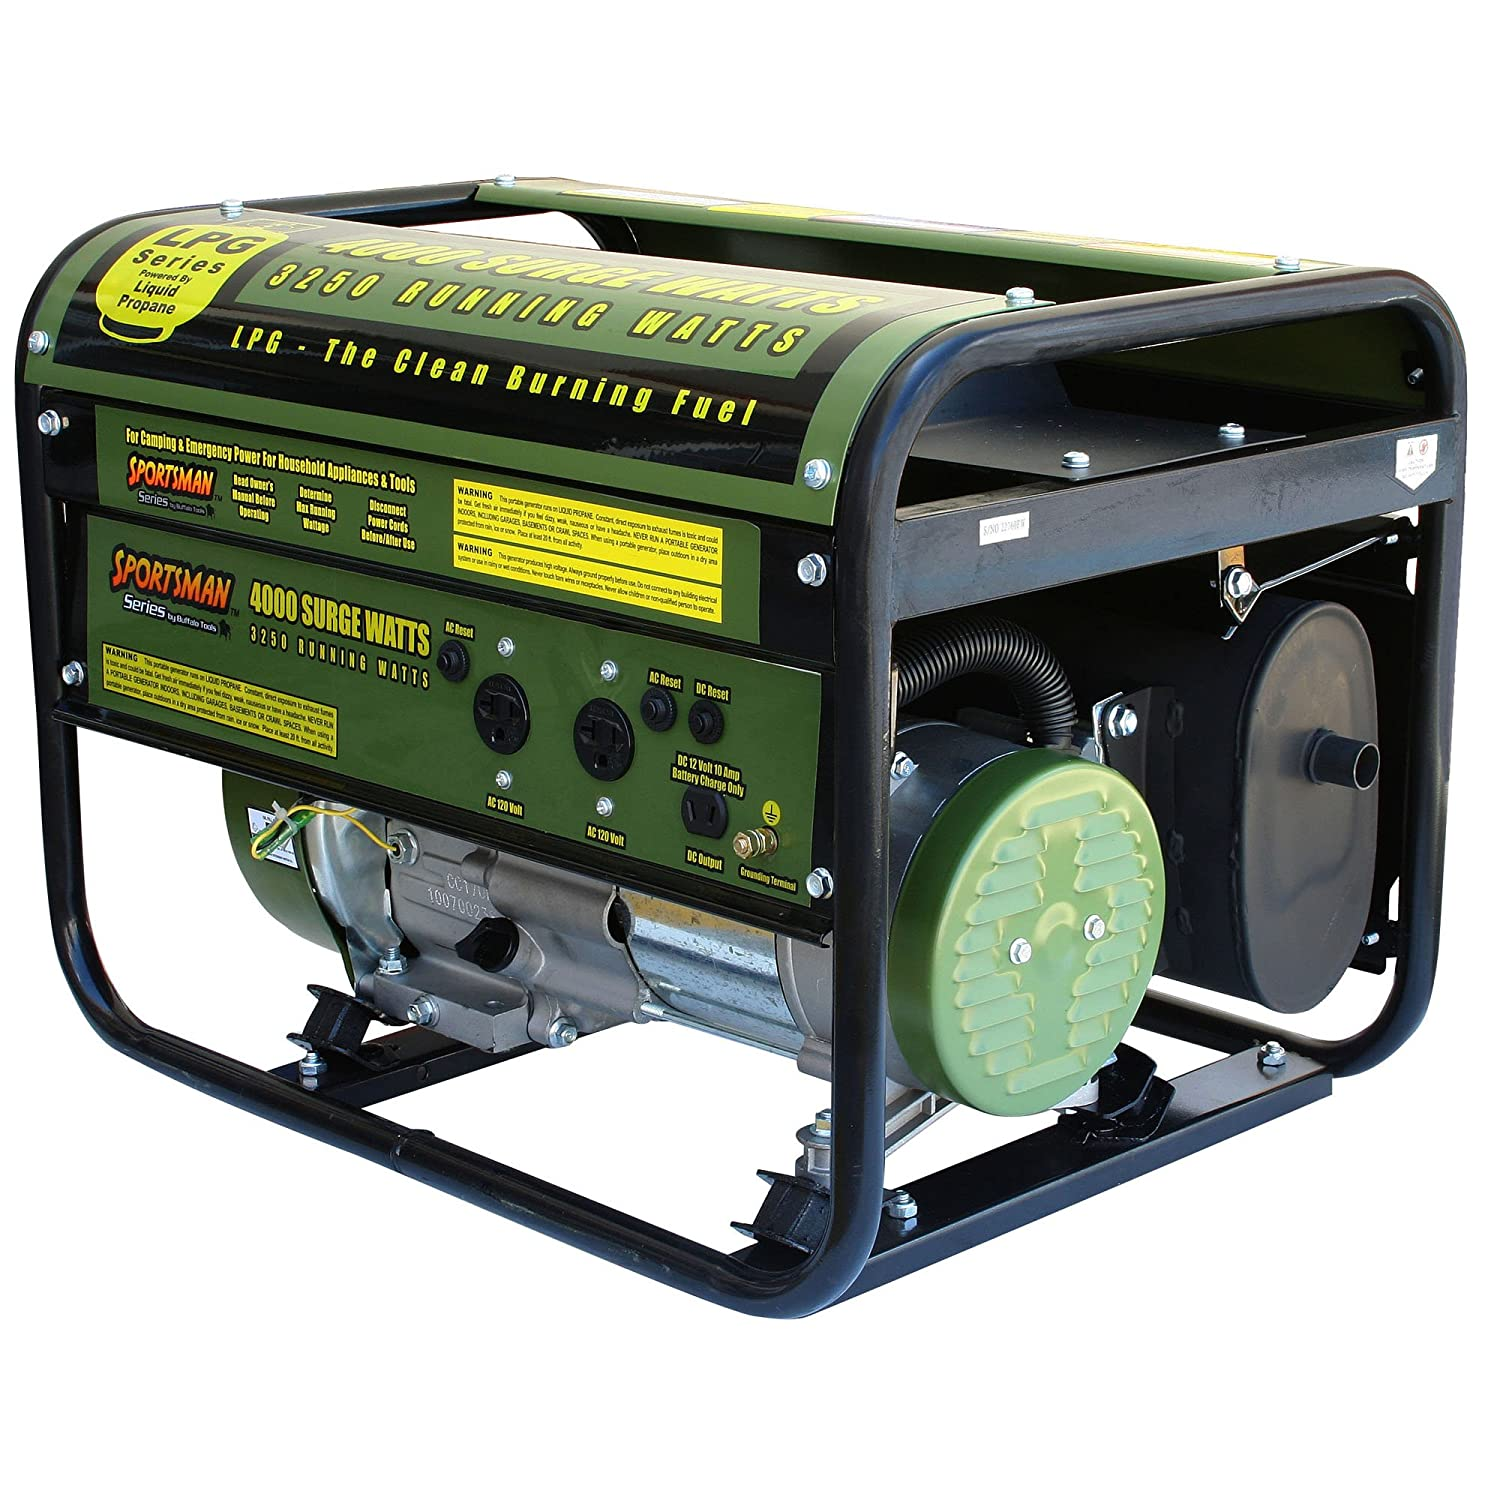 Best Propane Generator Reviews What is The Best Propane Generator